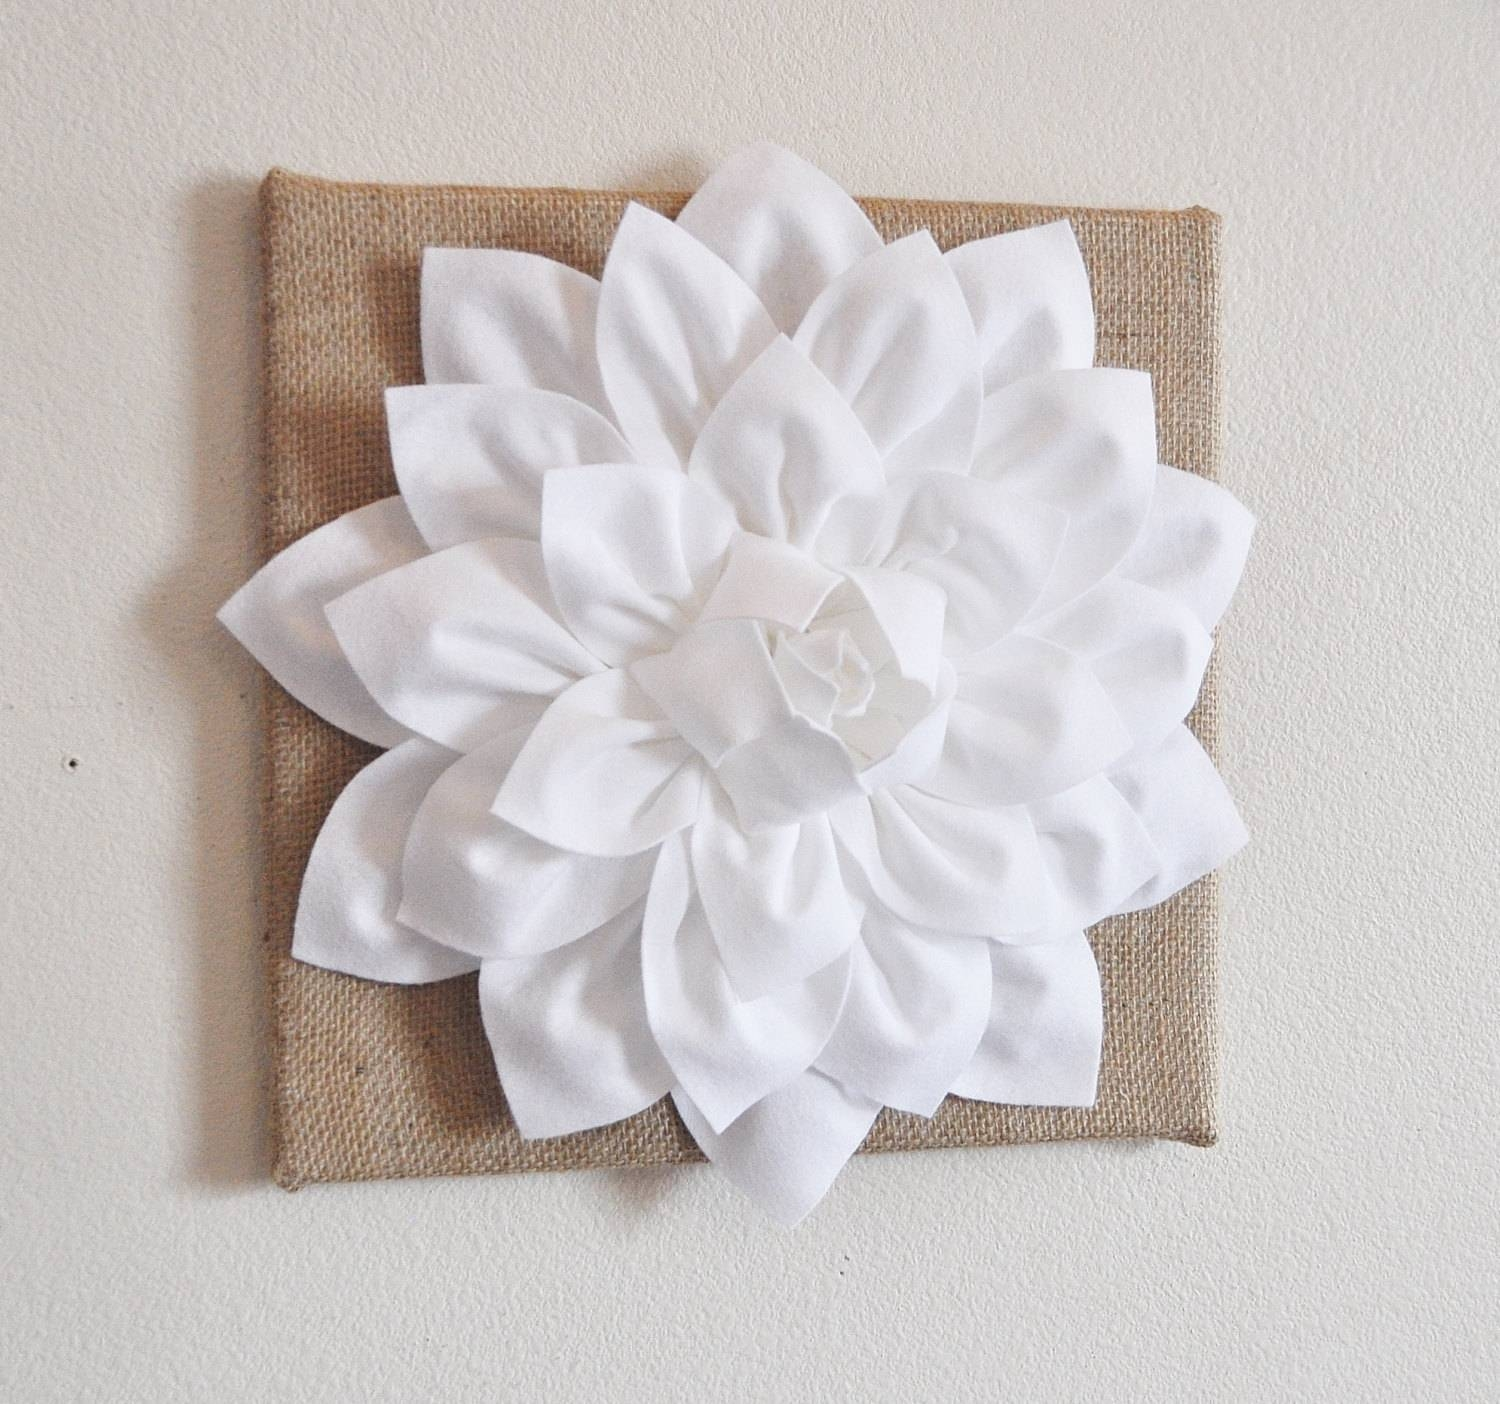 Wall Flower White Dahlia On Burlap 12 X12 Canvas Wall In Current White 3D Wall Art (View 19 of 20)